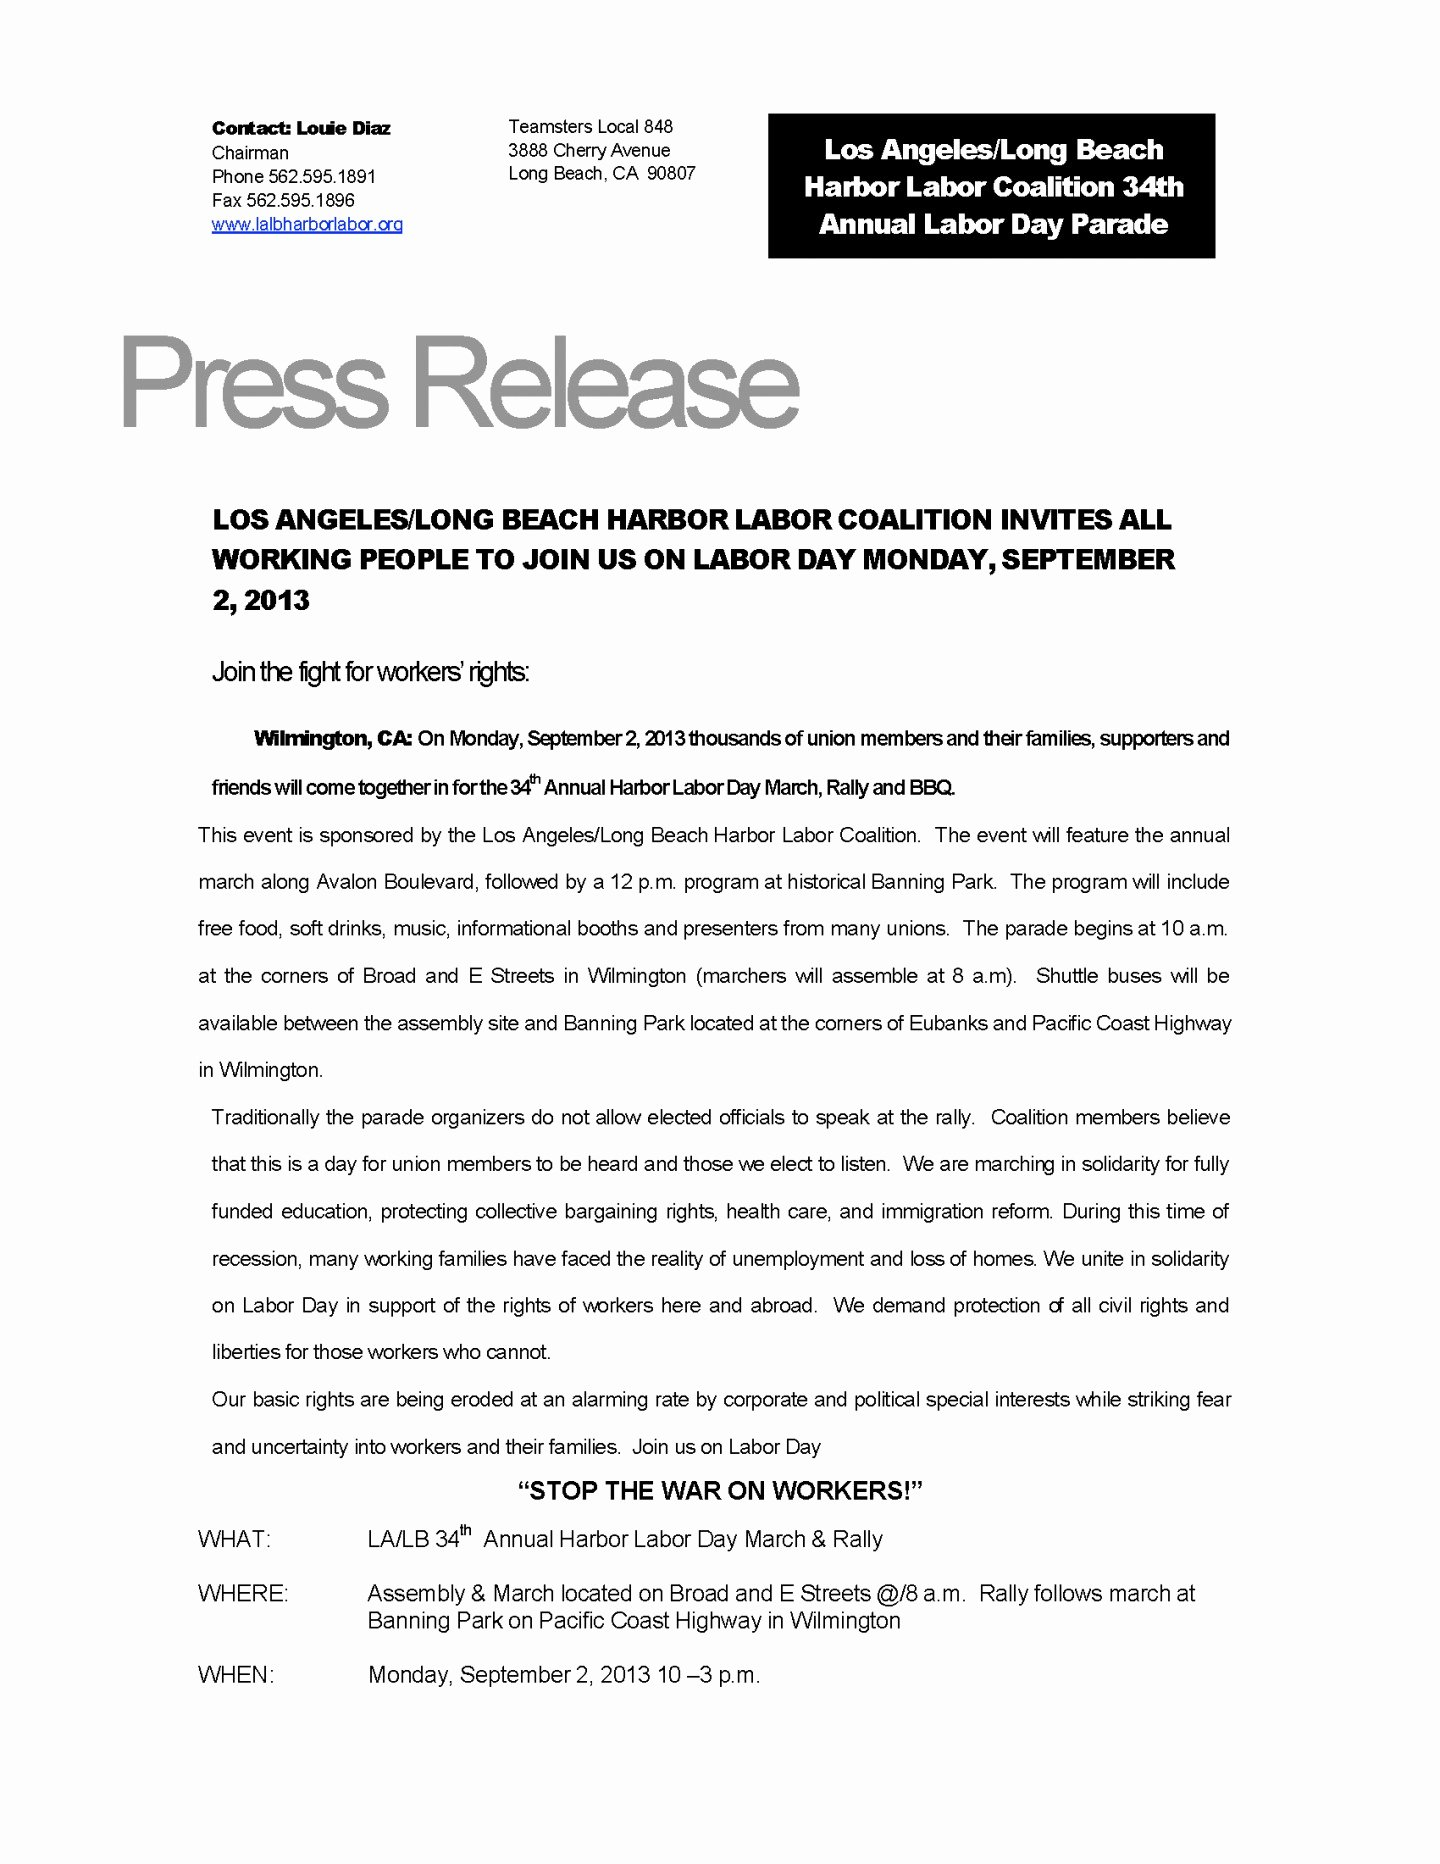 Ap Style Press Release Template Unique 42 Fast Ap Style Resume Mx A – Resume Samples